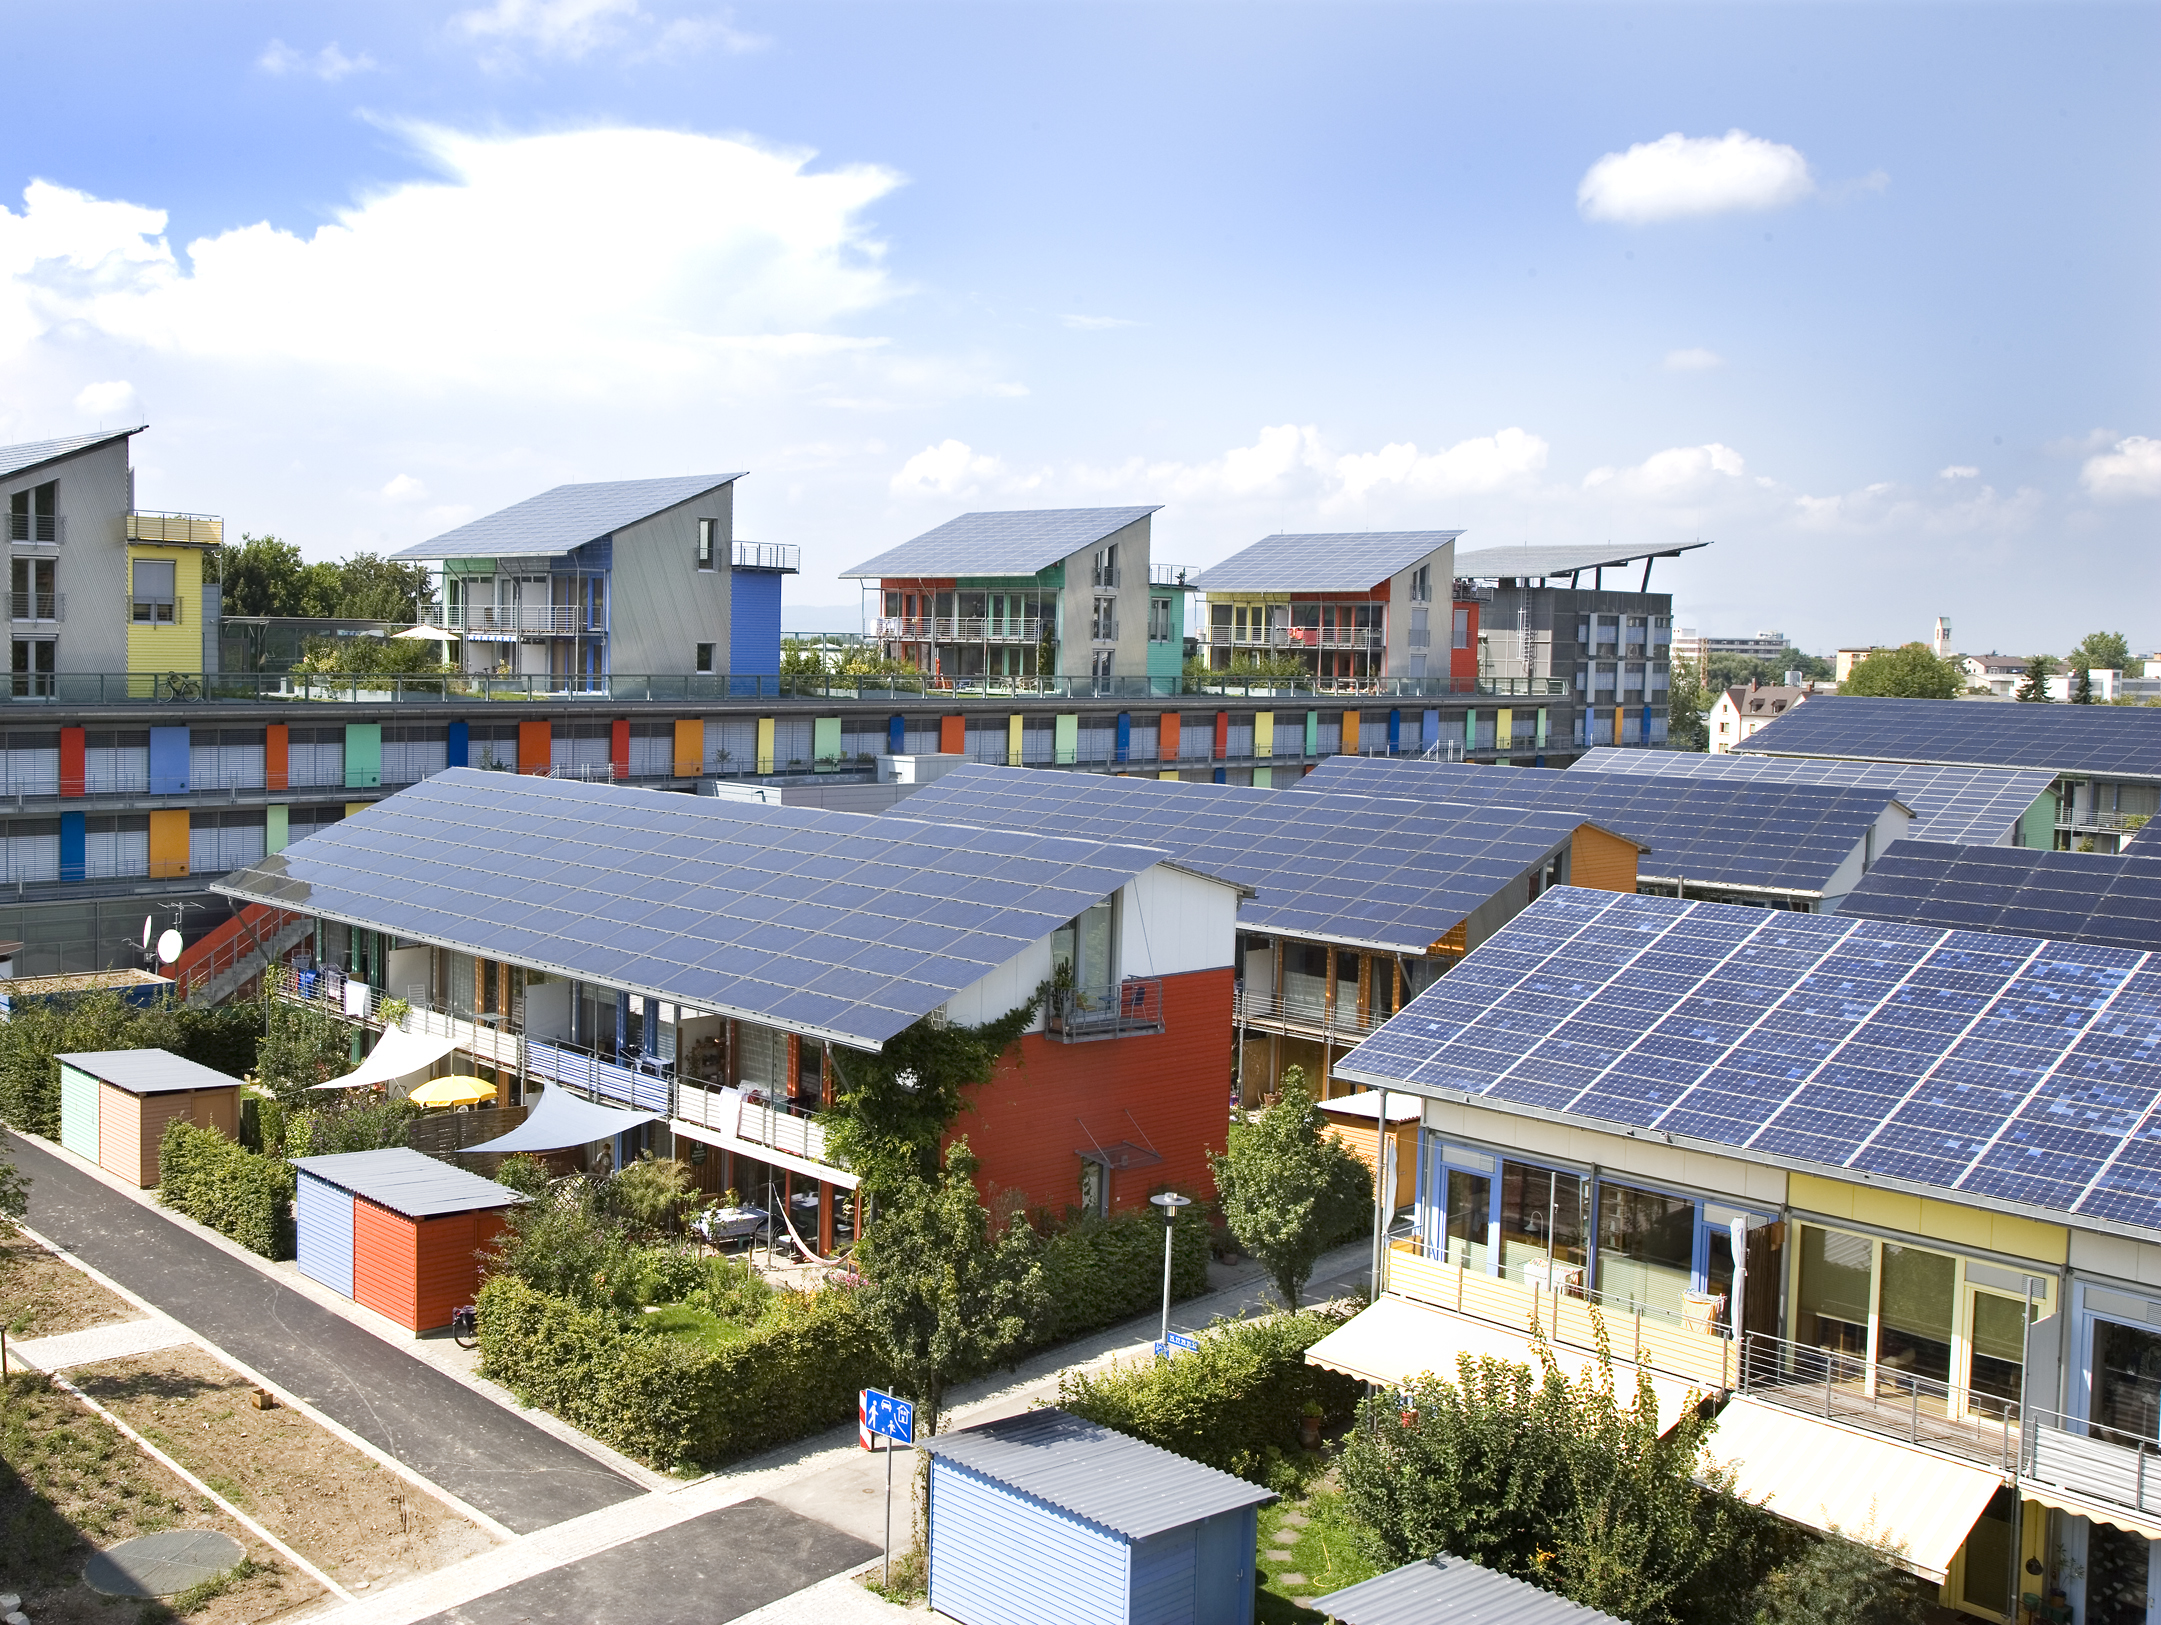 Solar panels on rooftops allow residents to take advantage of the Australian sun.   Wikimedia Commons  (public domain)